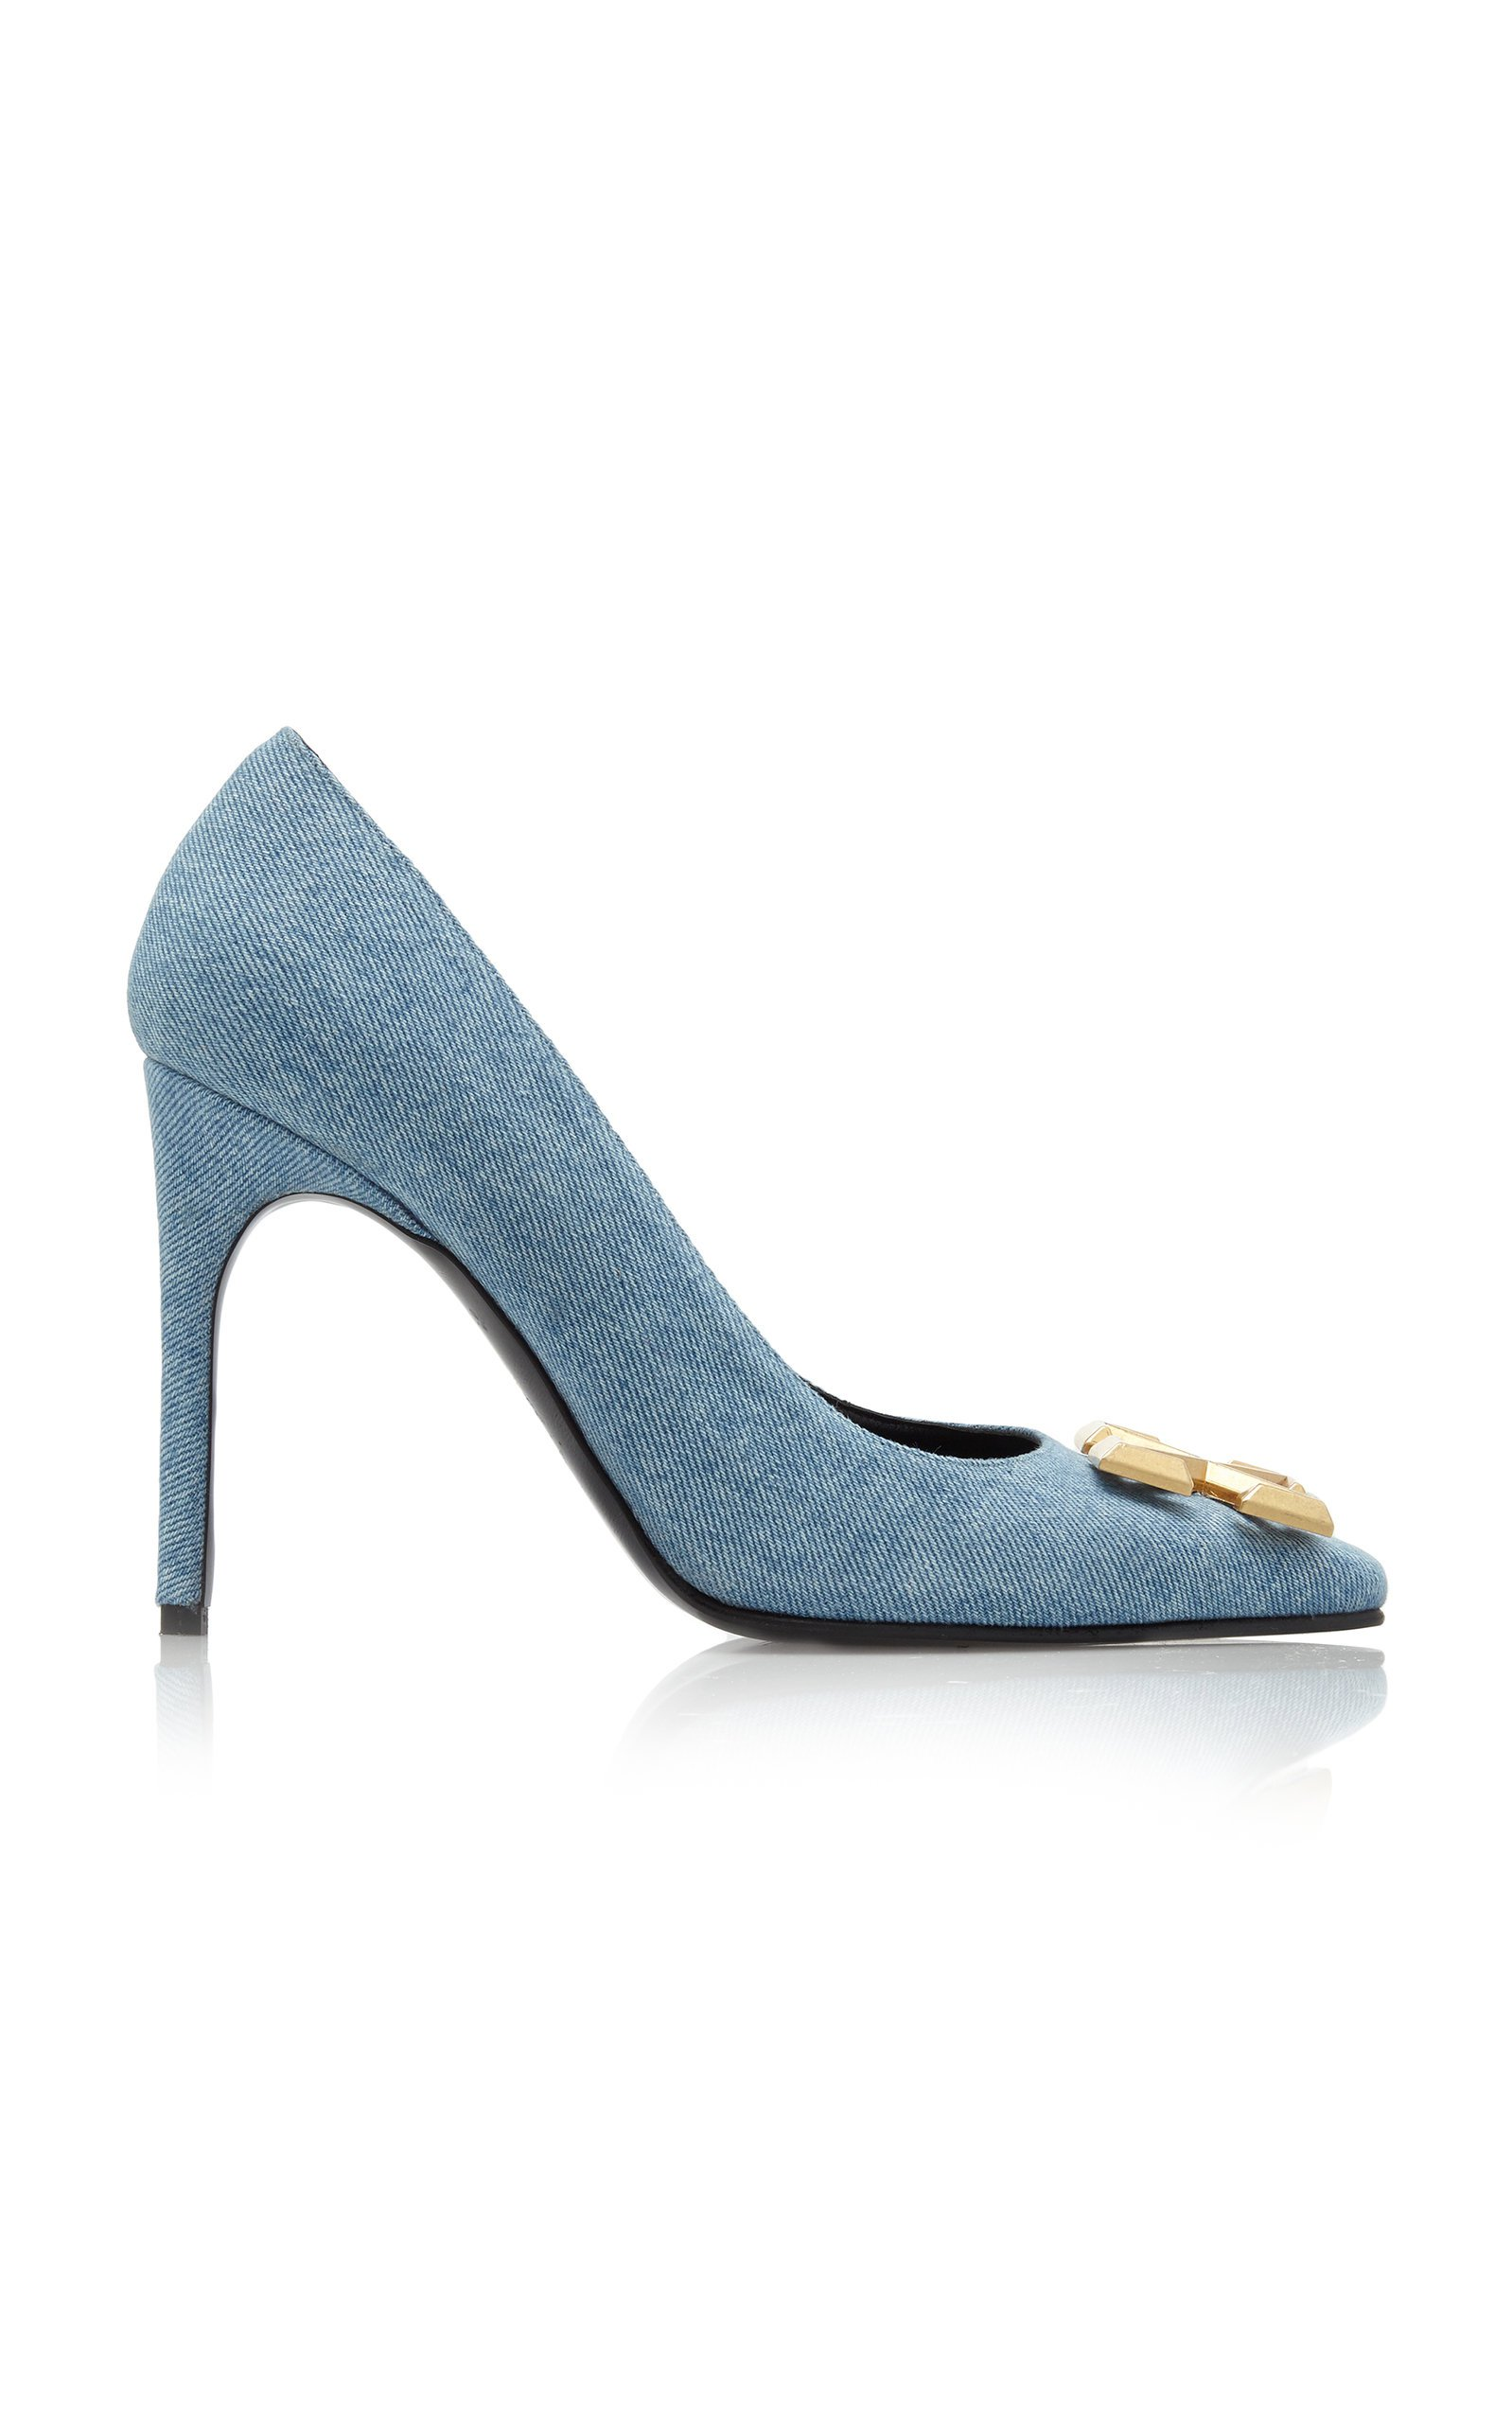 Arrow-Embellished Denim Pumps by Off-White c/o Virgil Abloh | Moda Operandi